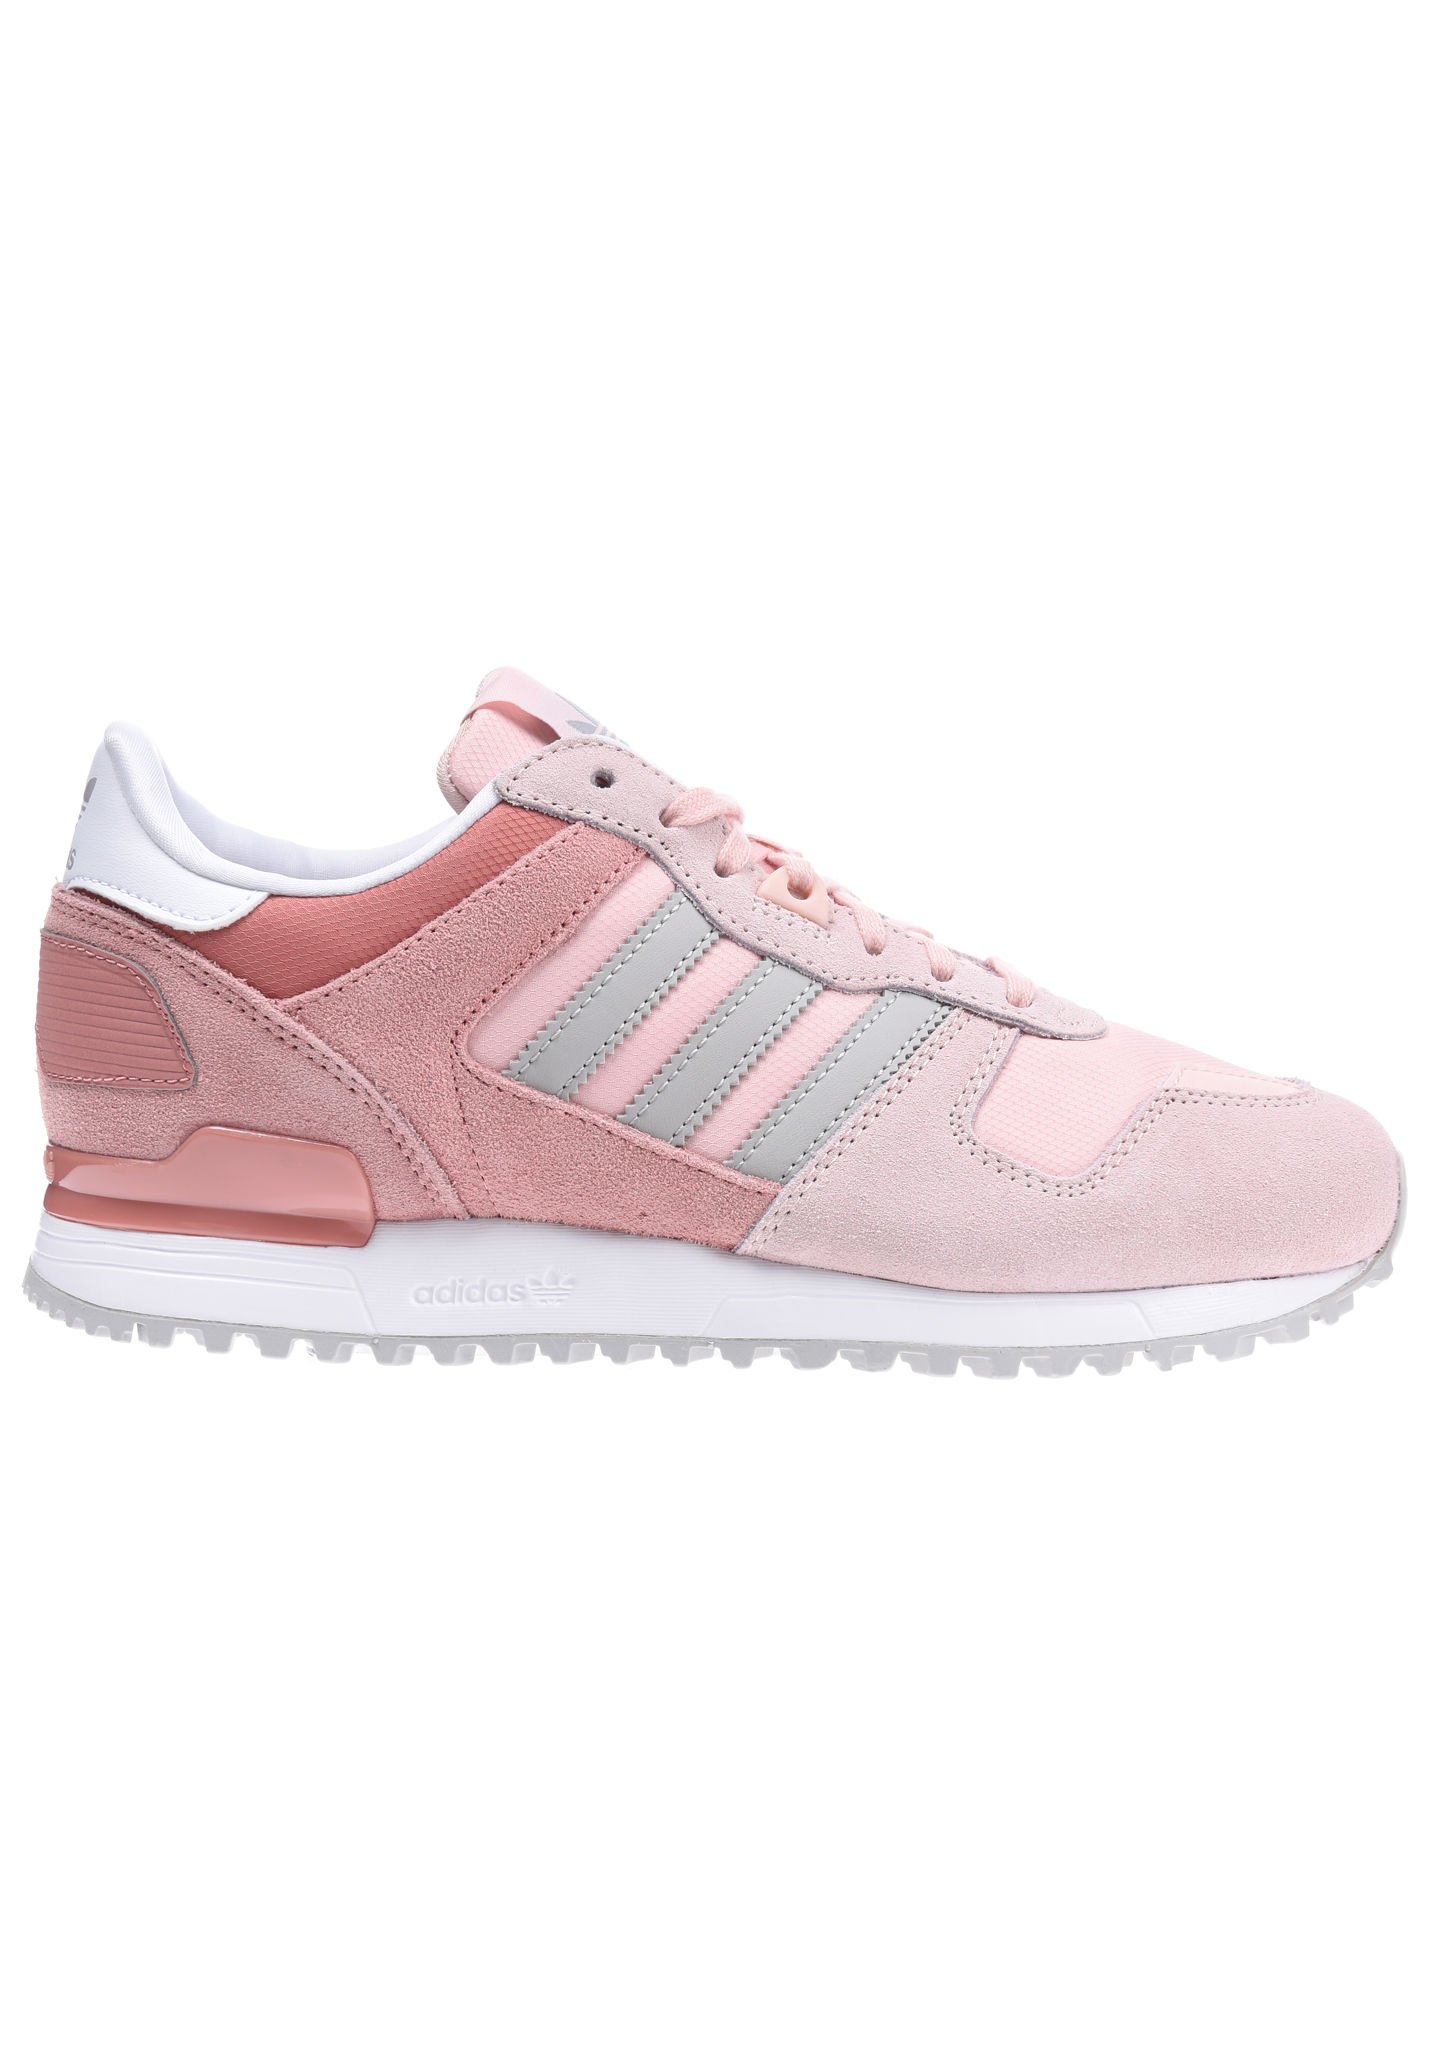 13d420f9cde51d adidas Originals ZX 700 - Sneaker für Damen - Pink - Planet Sports